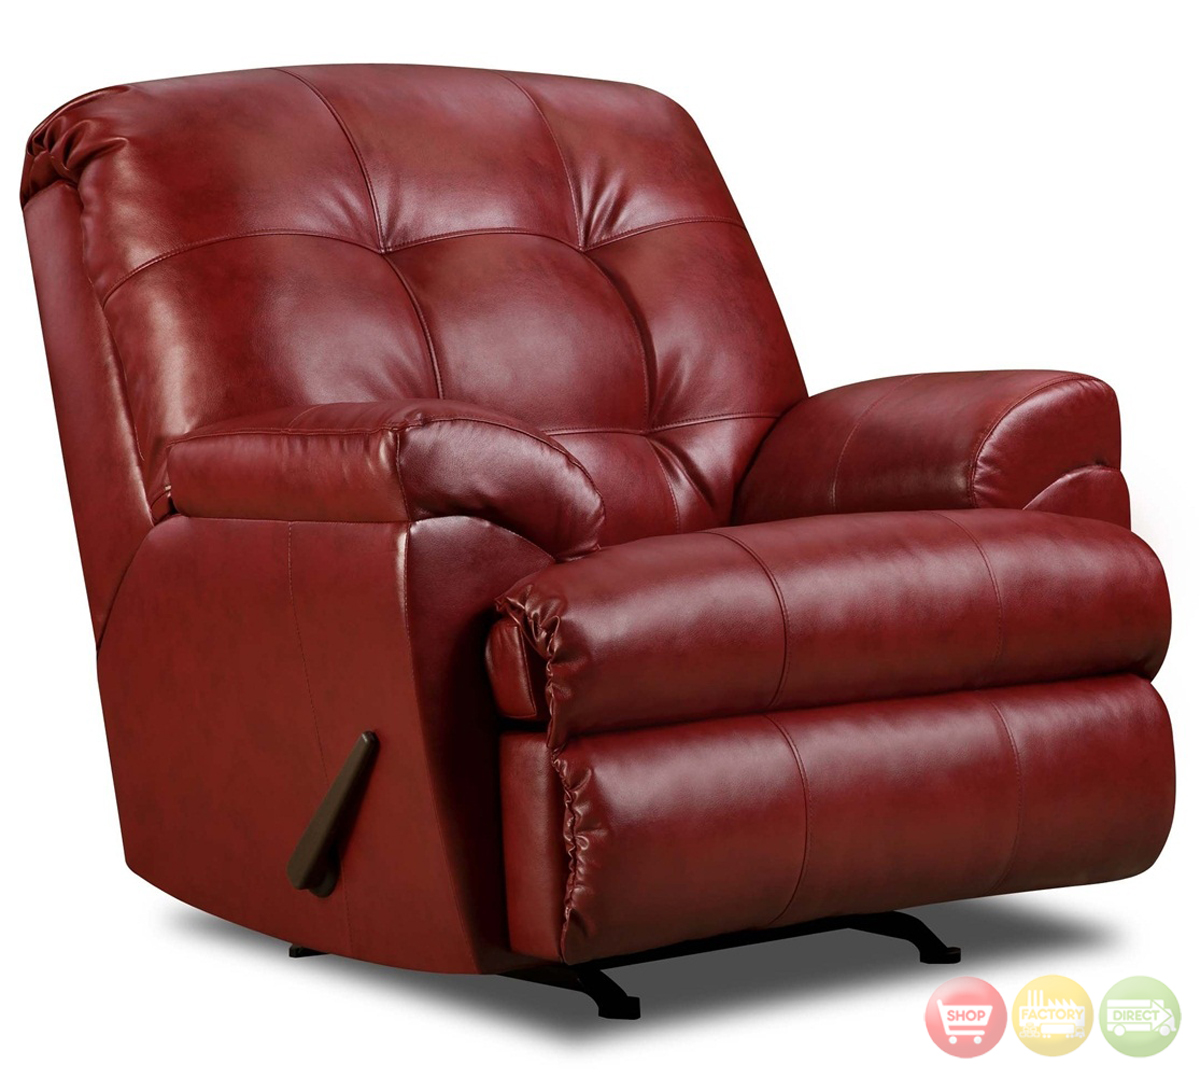 Red sectional red bonded leather sofa shop factory direct for Bonded leather sectional with chaise